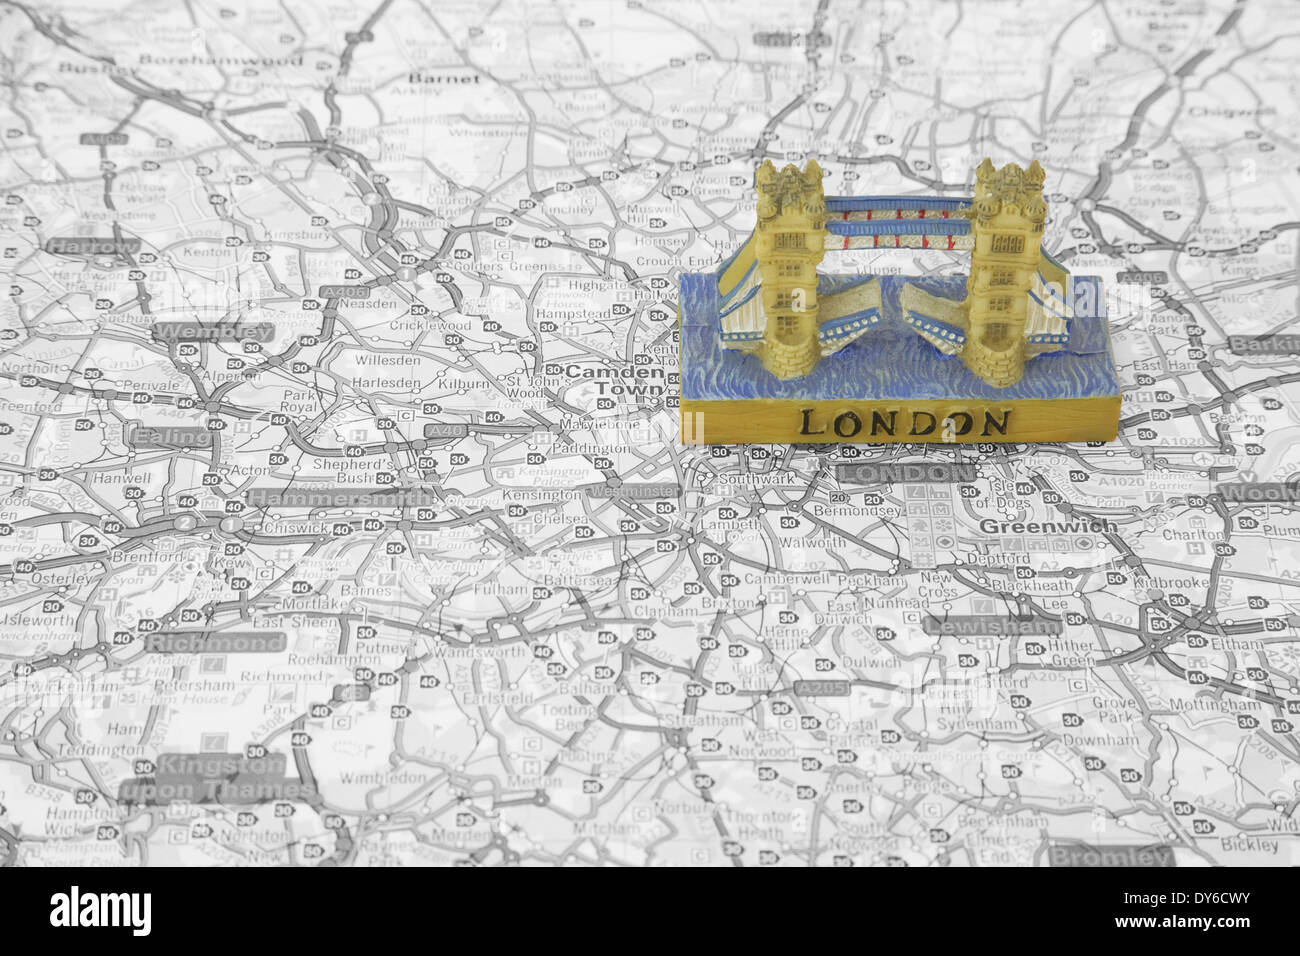 London Bridge Map.Small Model Of Tower Bridge On Top Of A Map Of London Stock Photo